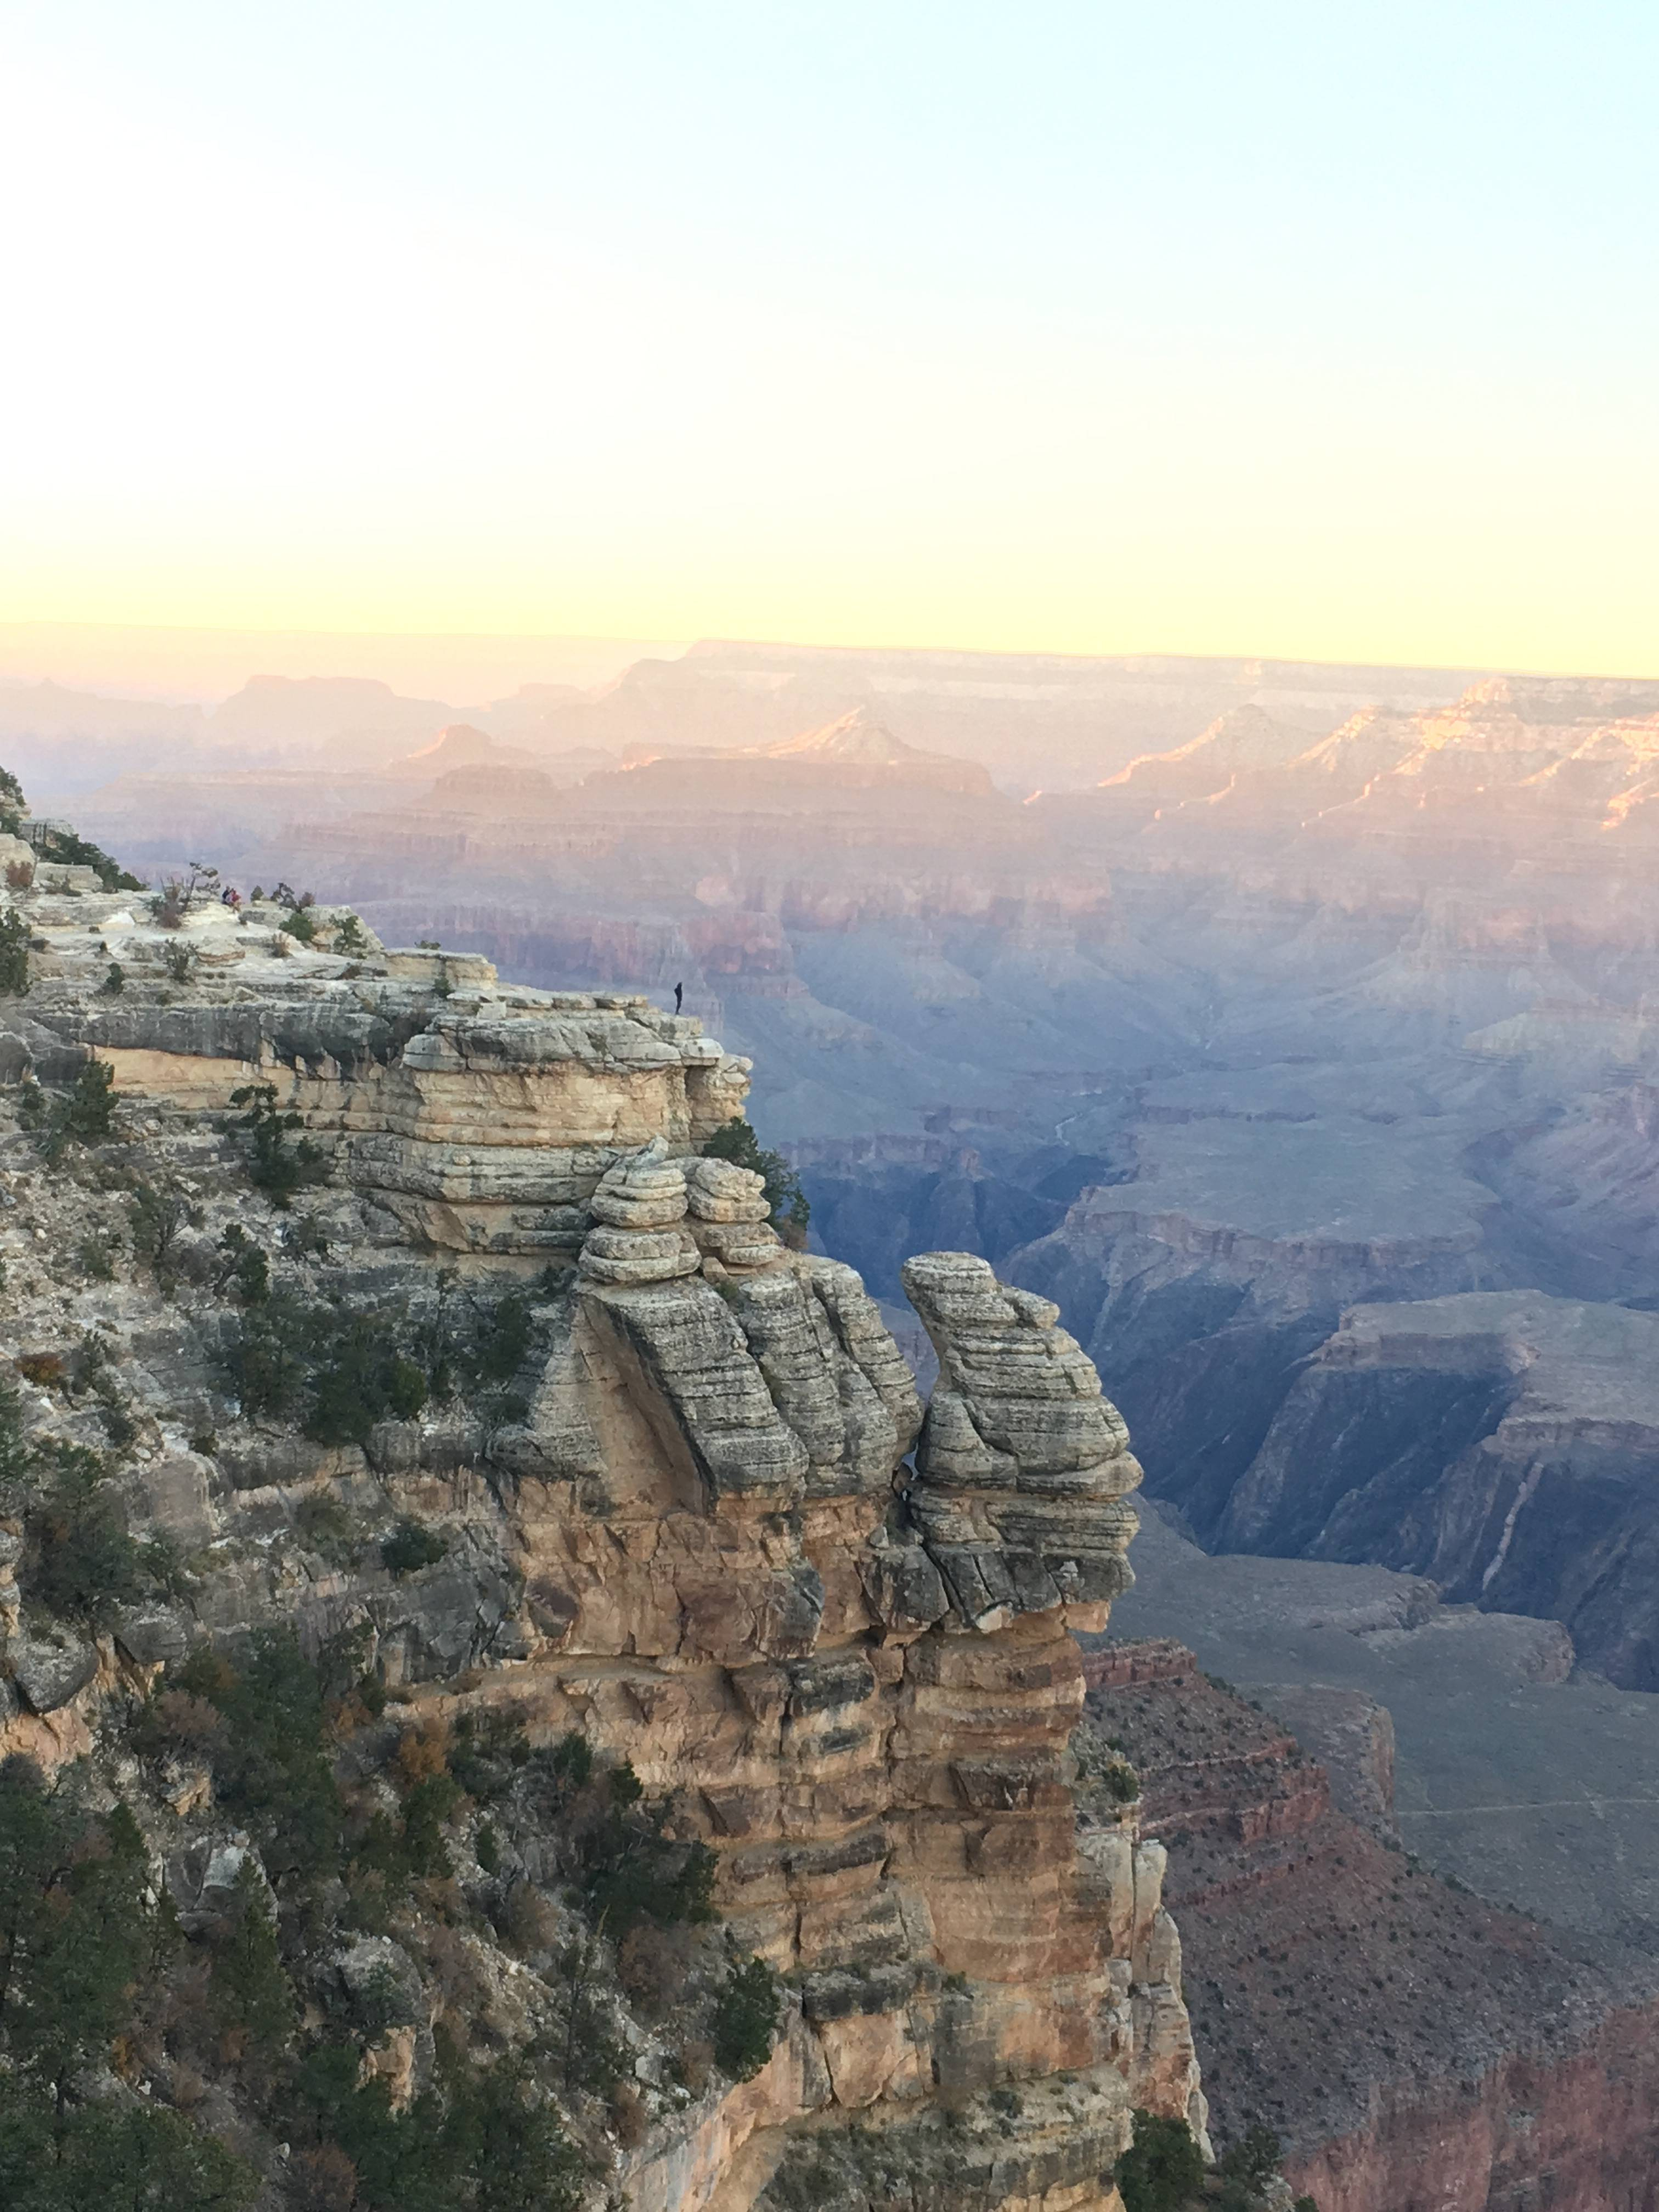 Photo 1: Grand Canyon